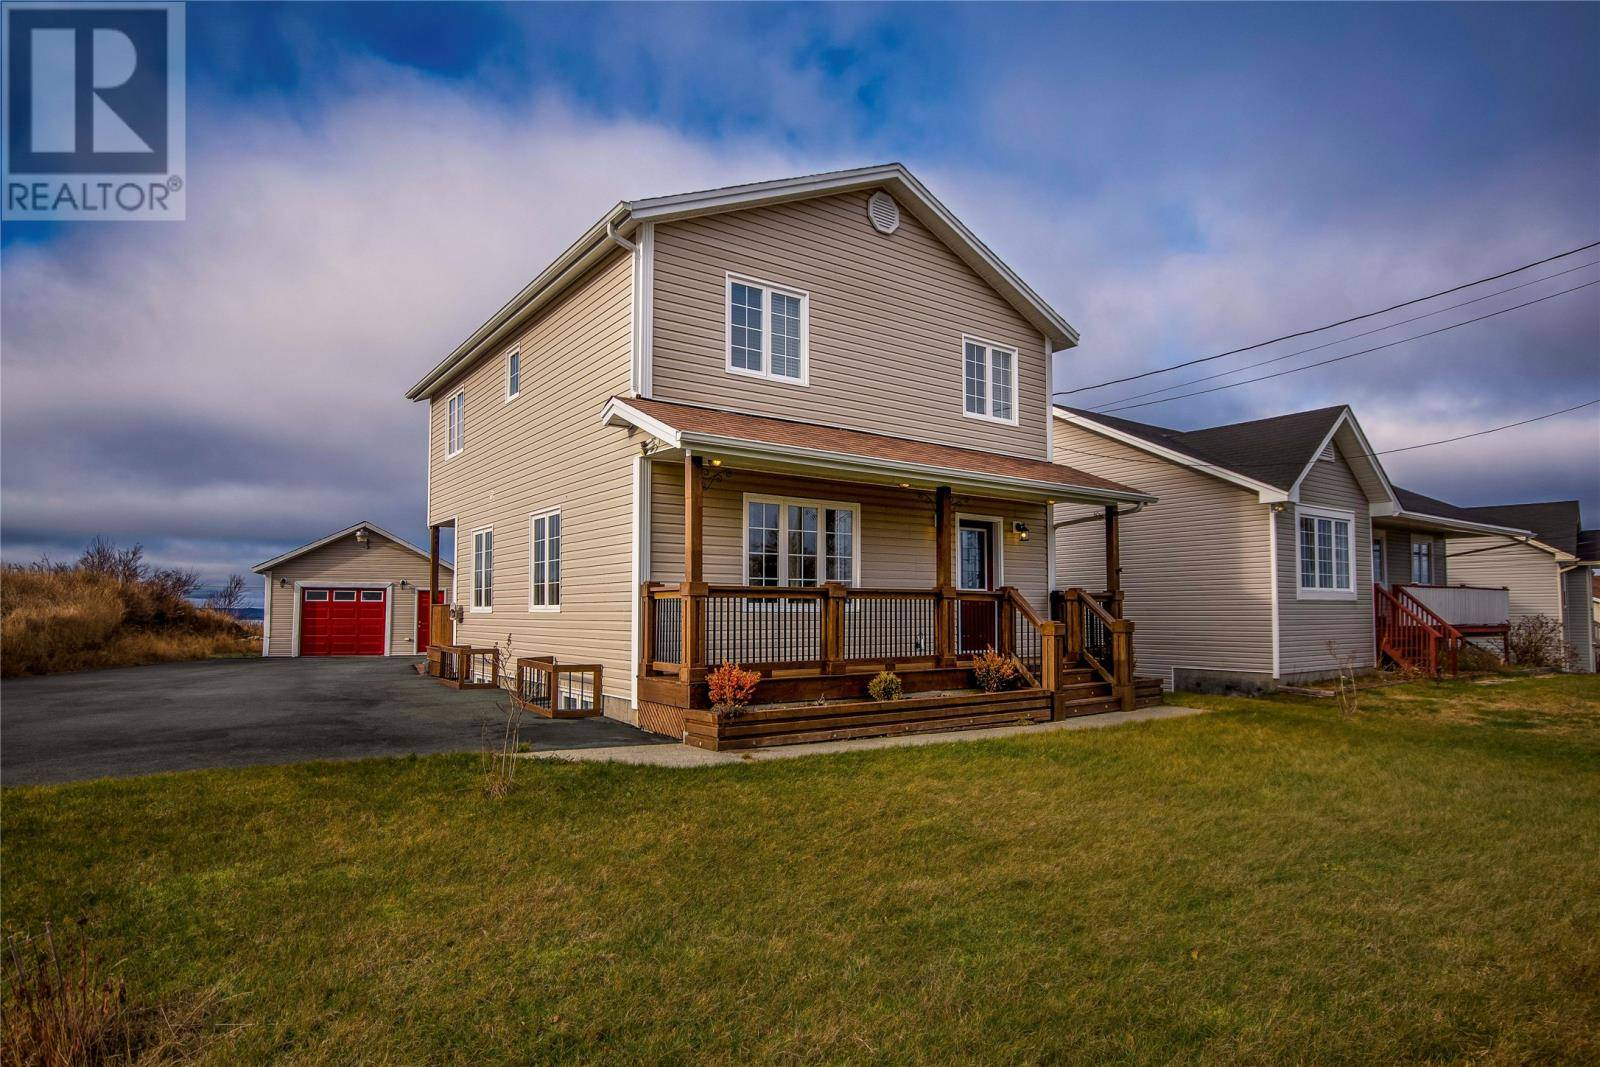 House for sale at 36 Farmland Ln Conception Bay South Newfoundland - MLS: 1207634